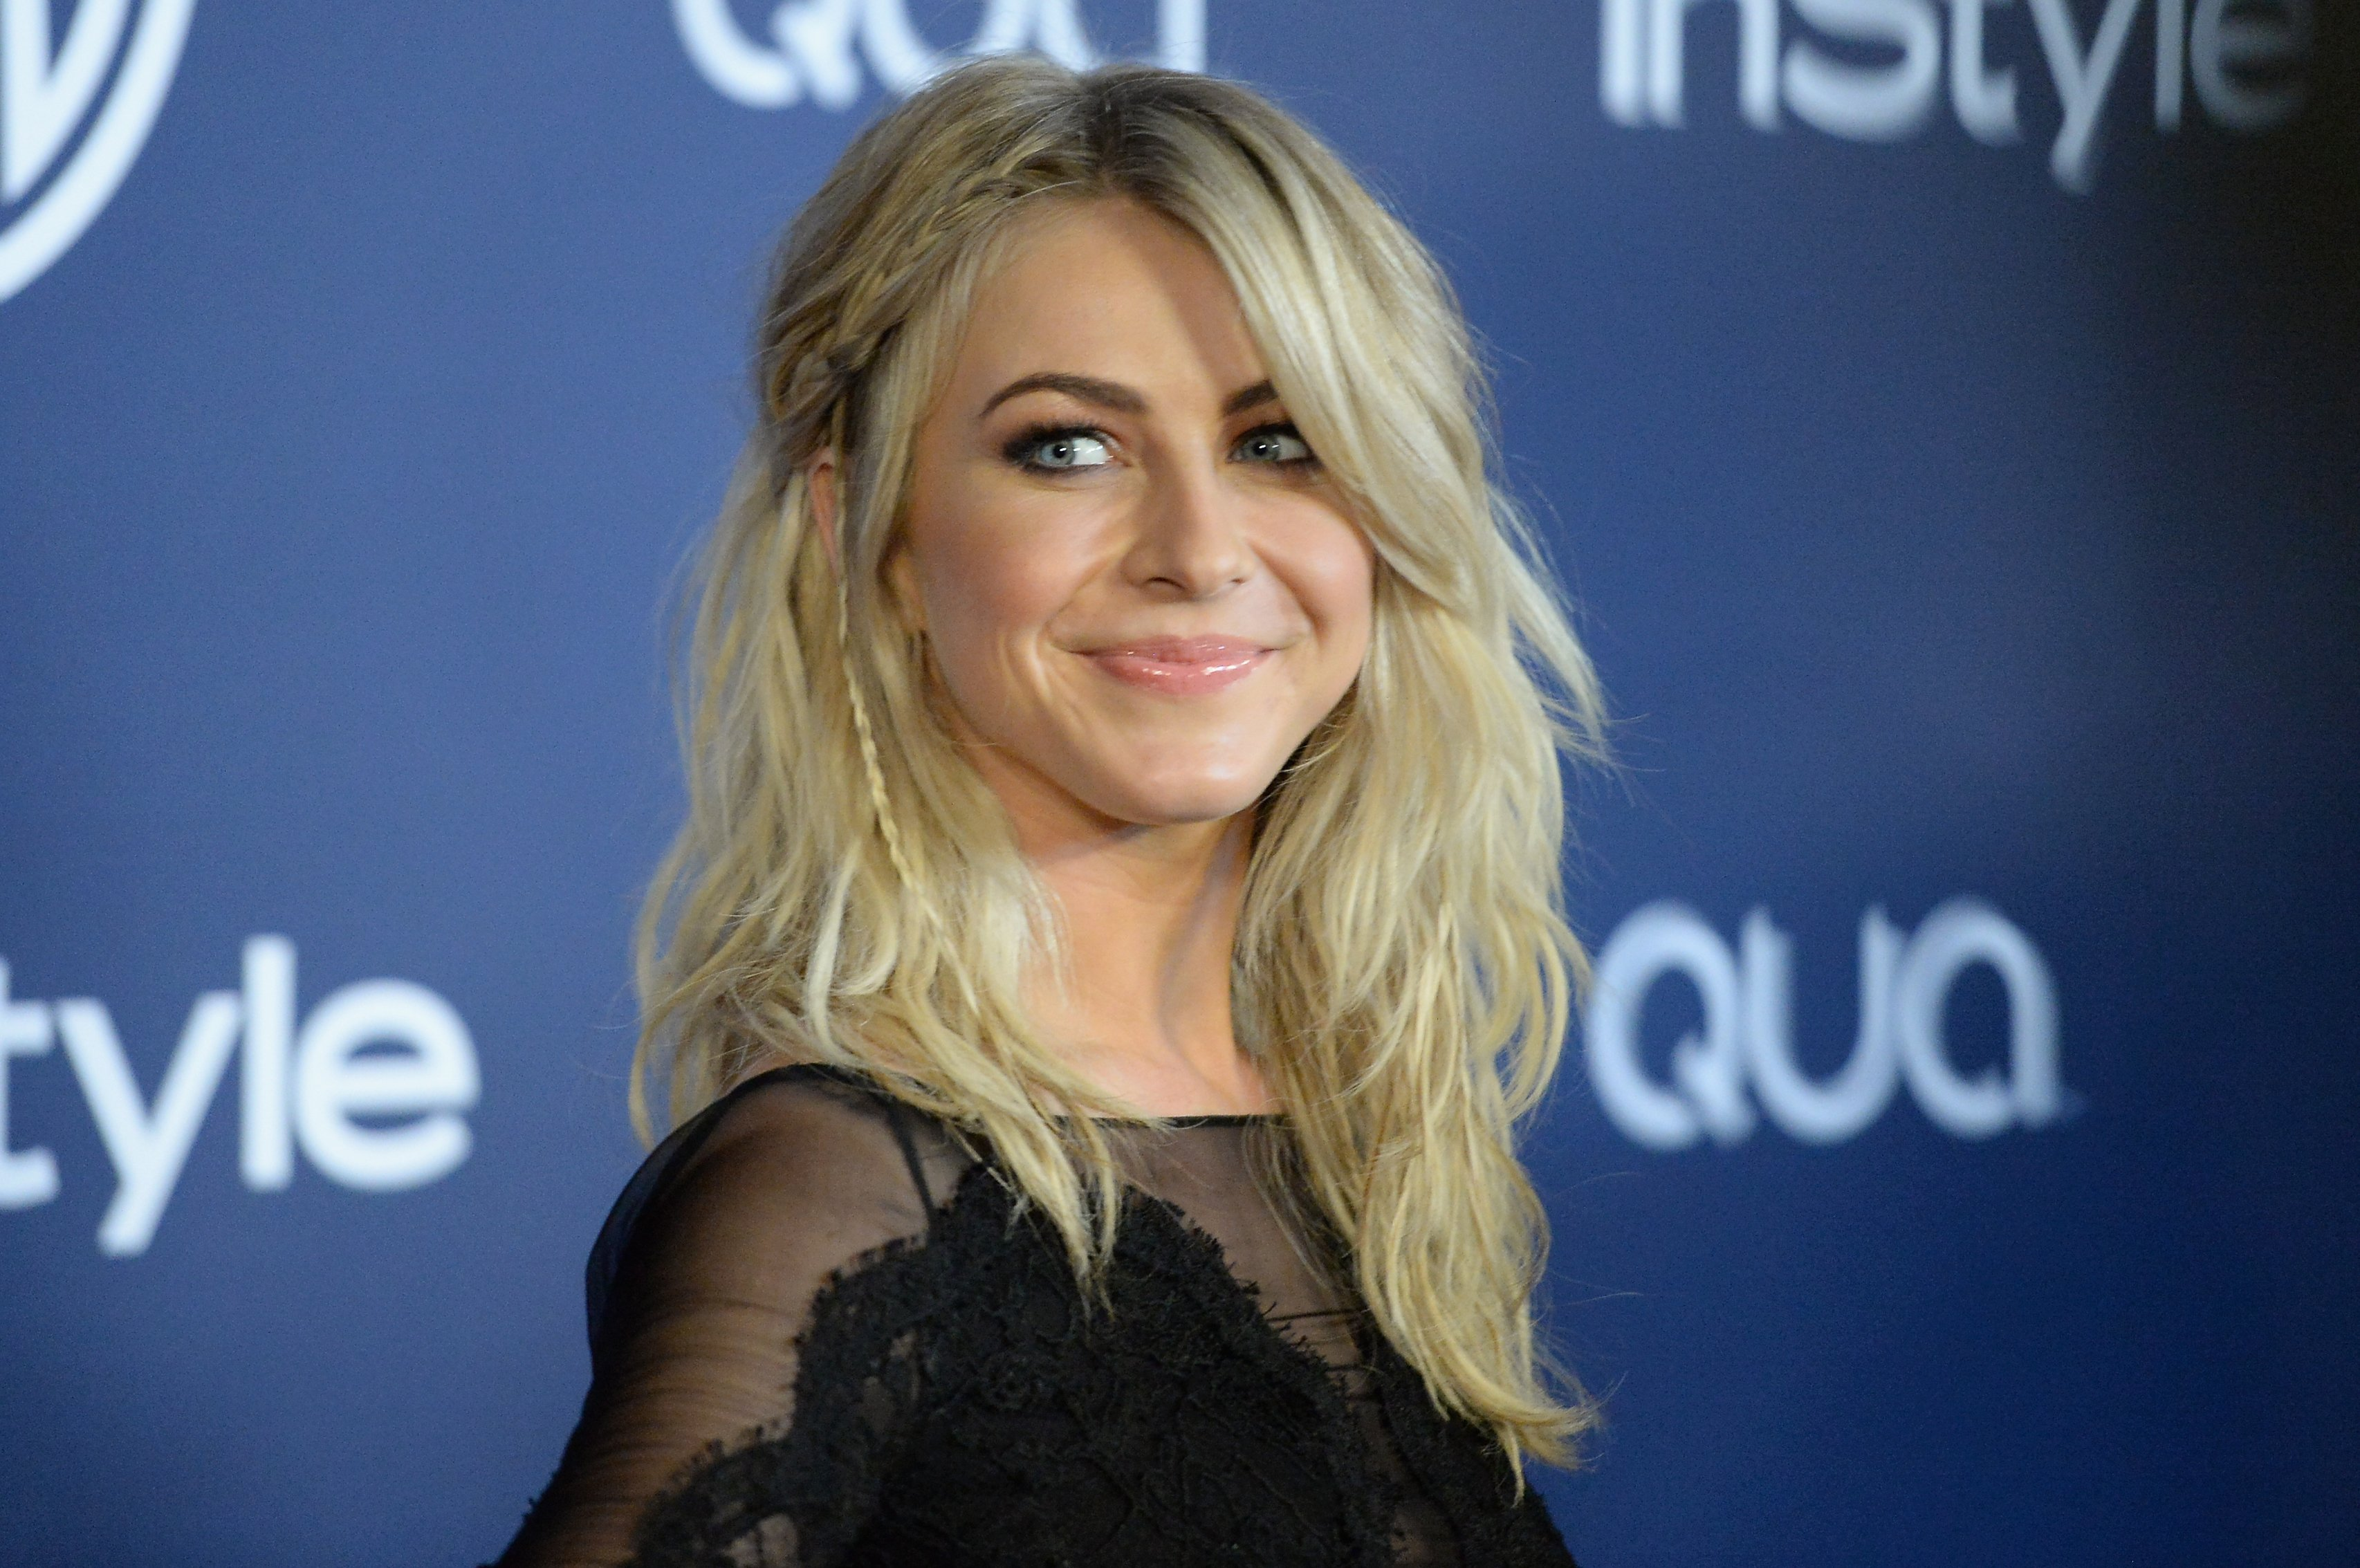 Julianne Hough at Instyle Golden Globe Party 2014 | Photo: Getty Images